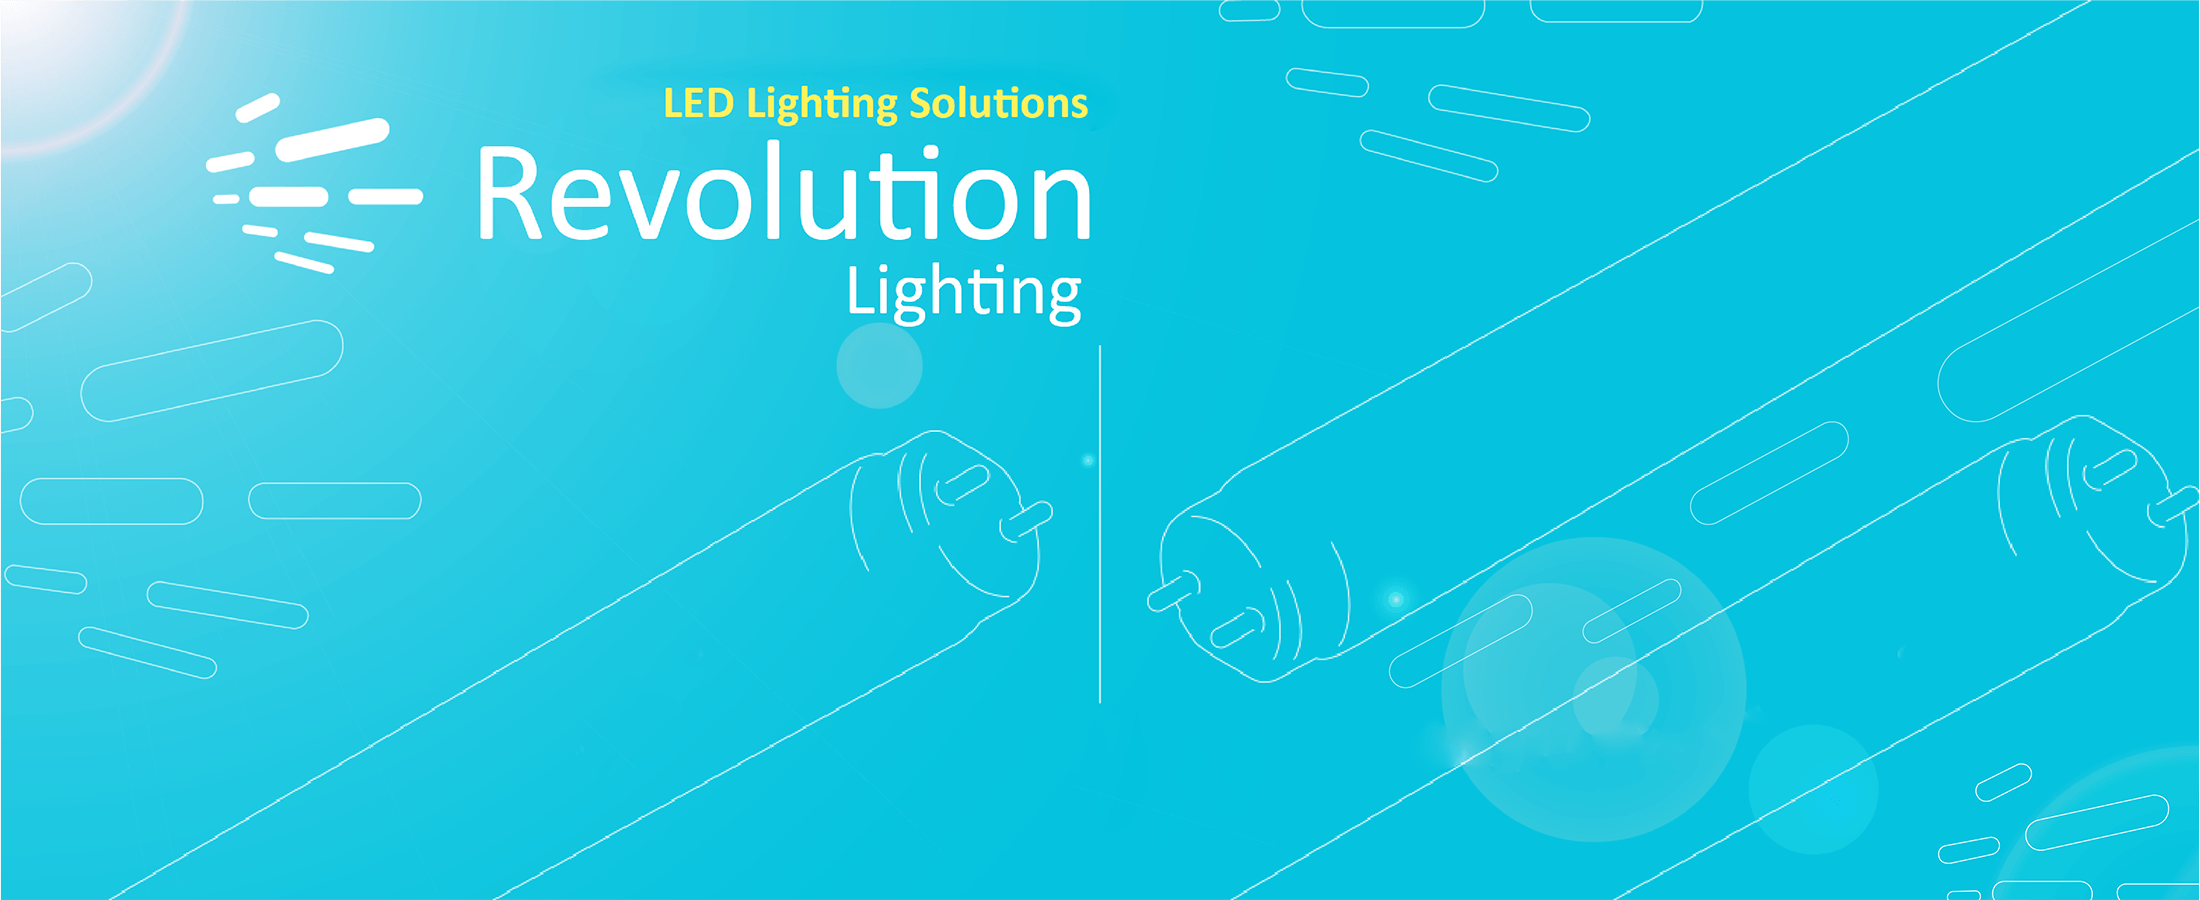 Banner - Revolution Lighting Background Image